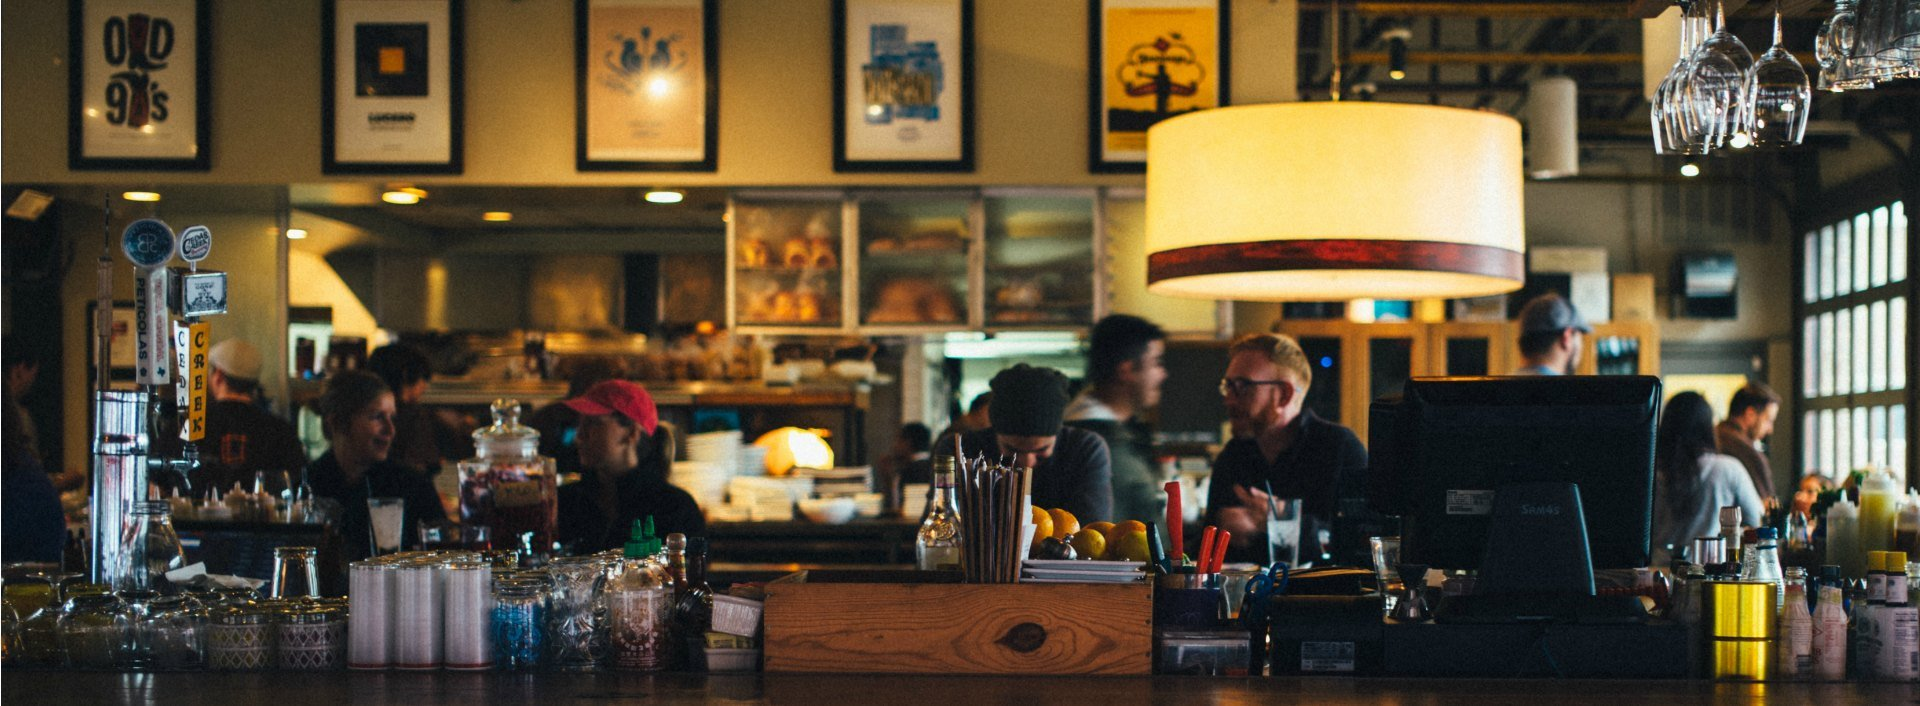 Restaurant Phrases: Use these 7 phrases when you go to a restaurant to eat with friends.